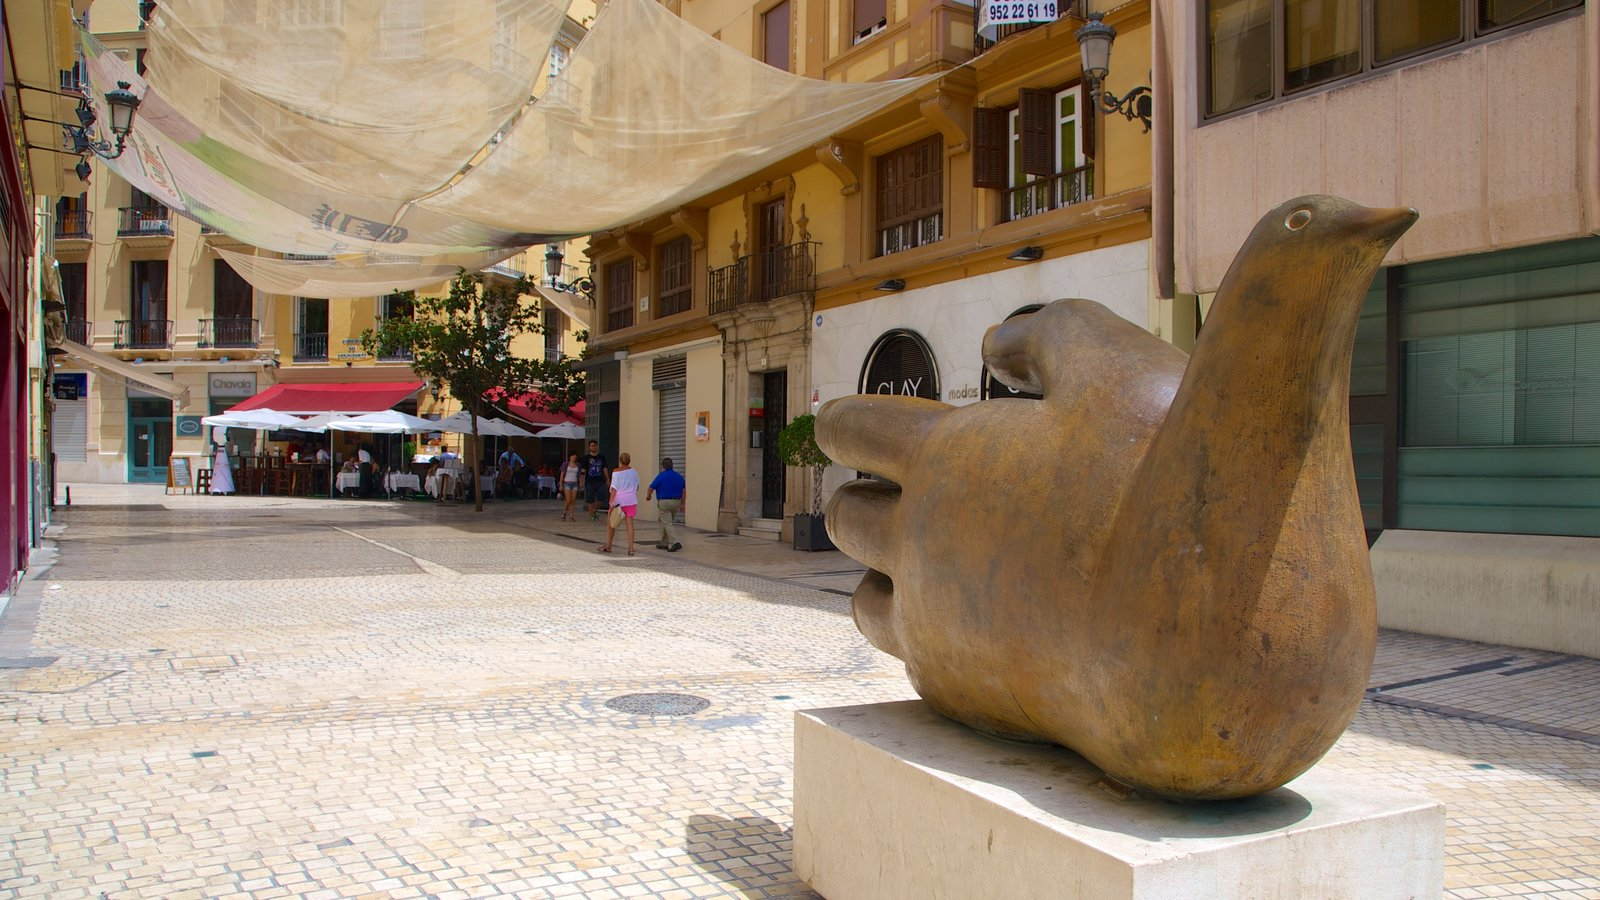 Malaga Historic Centre showing a city, art and outdoor art